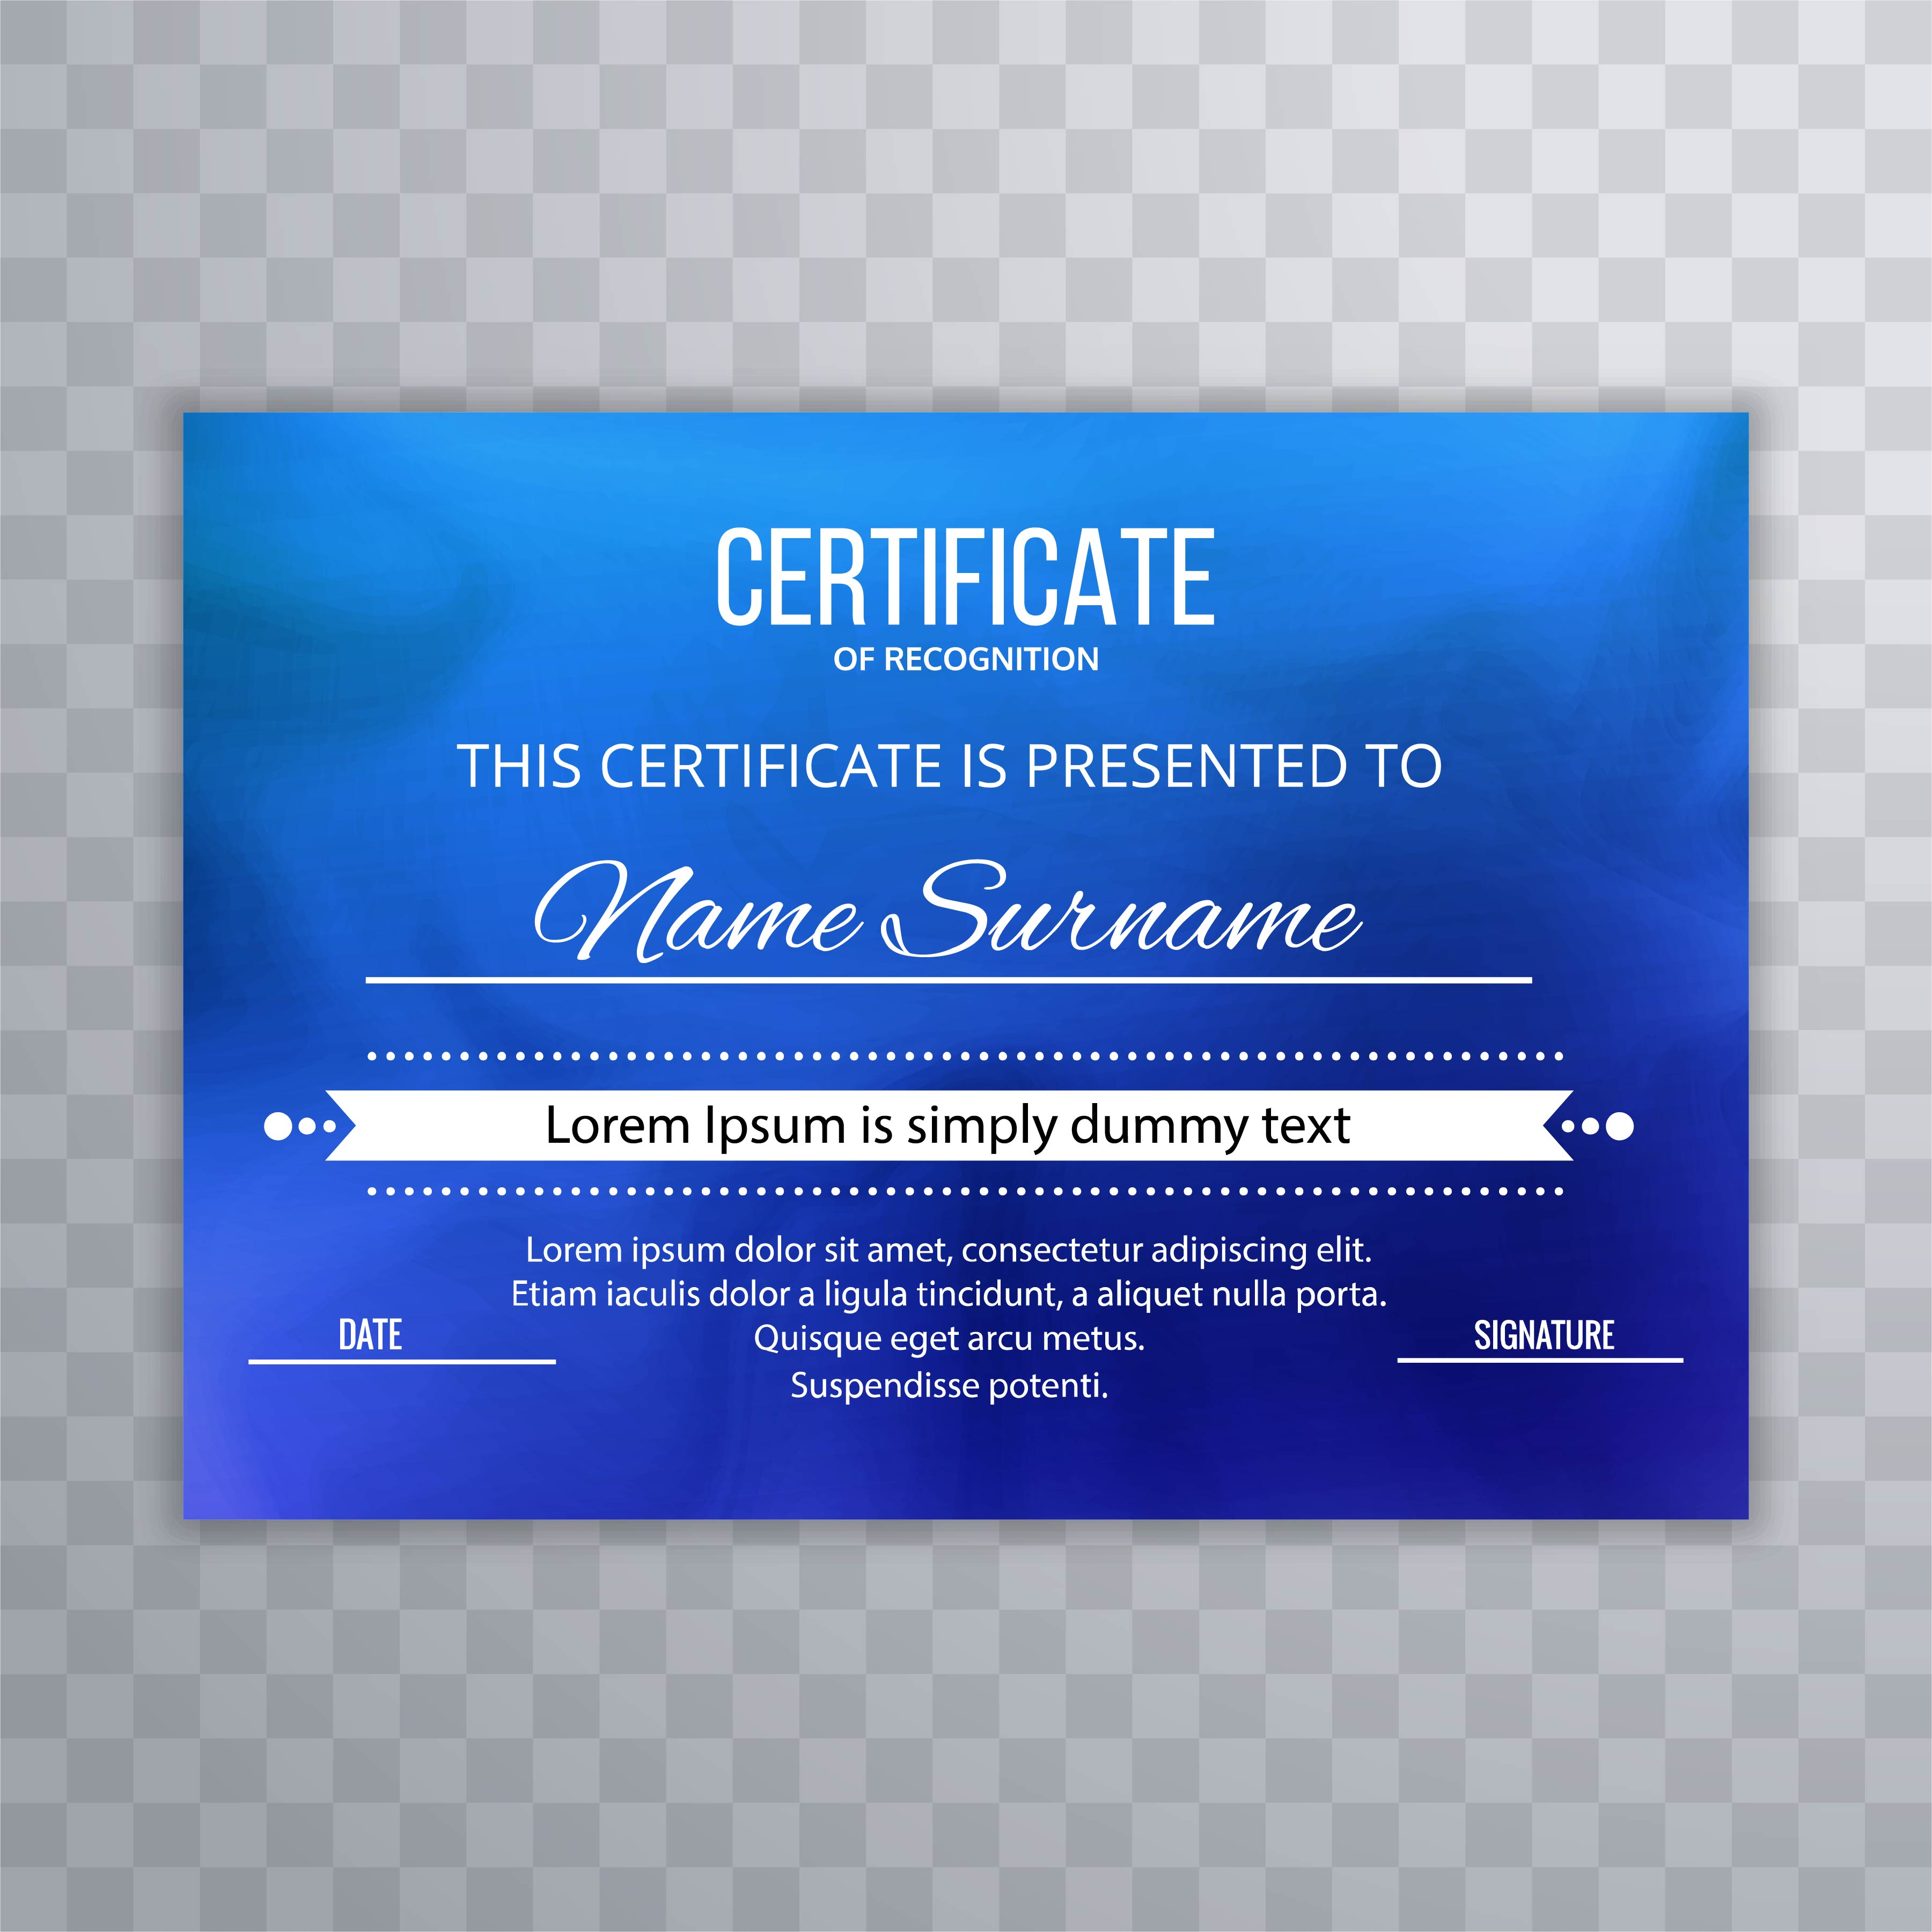 Abstract blue certificate background vector - Download ...